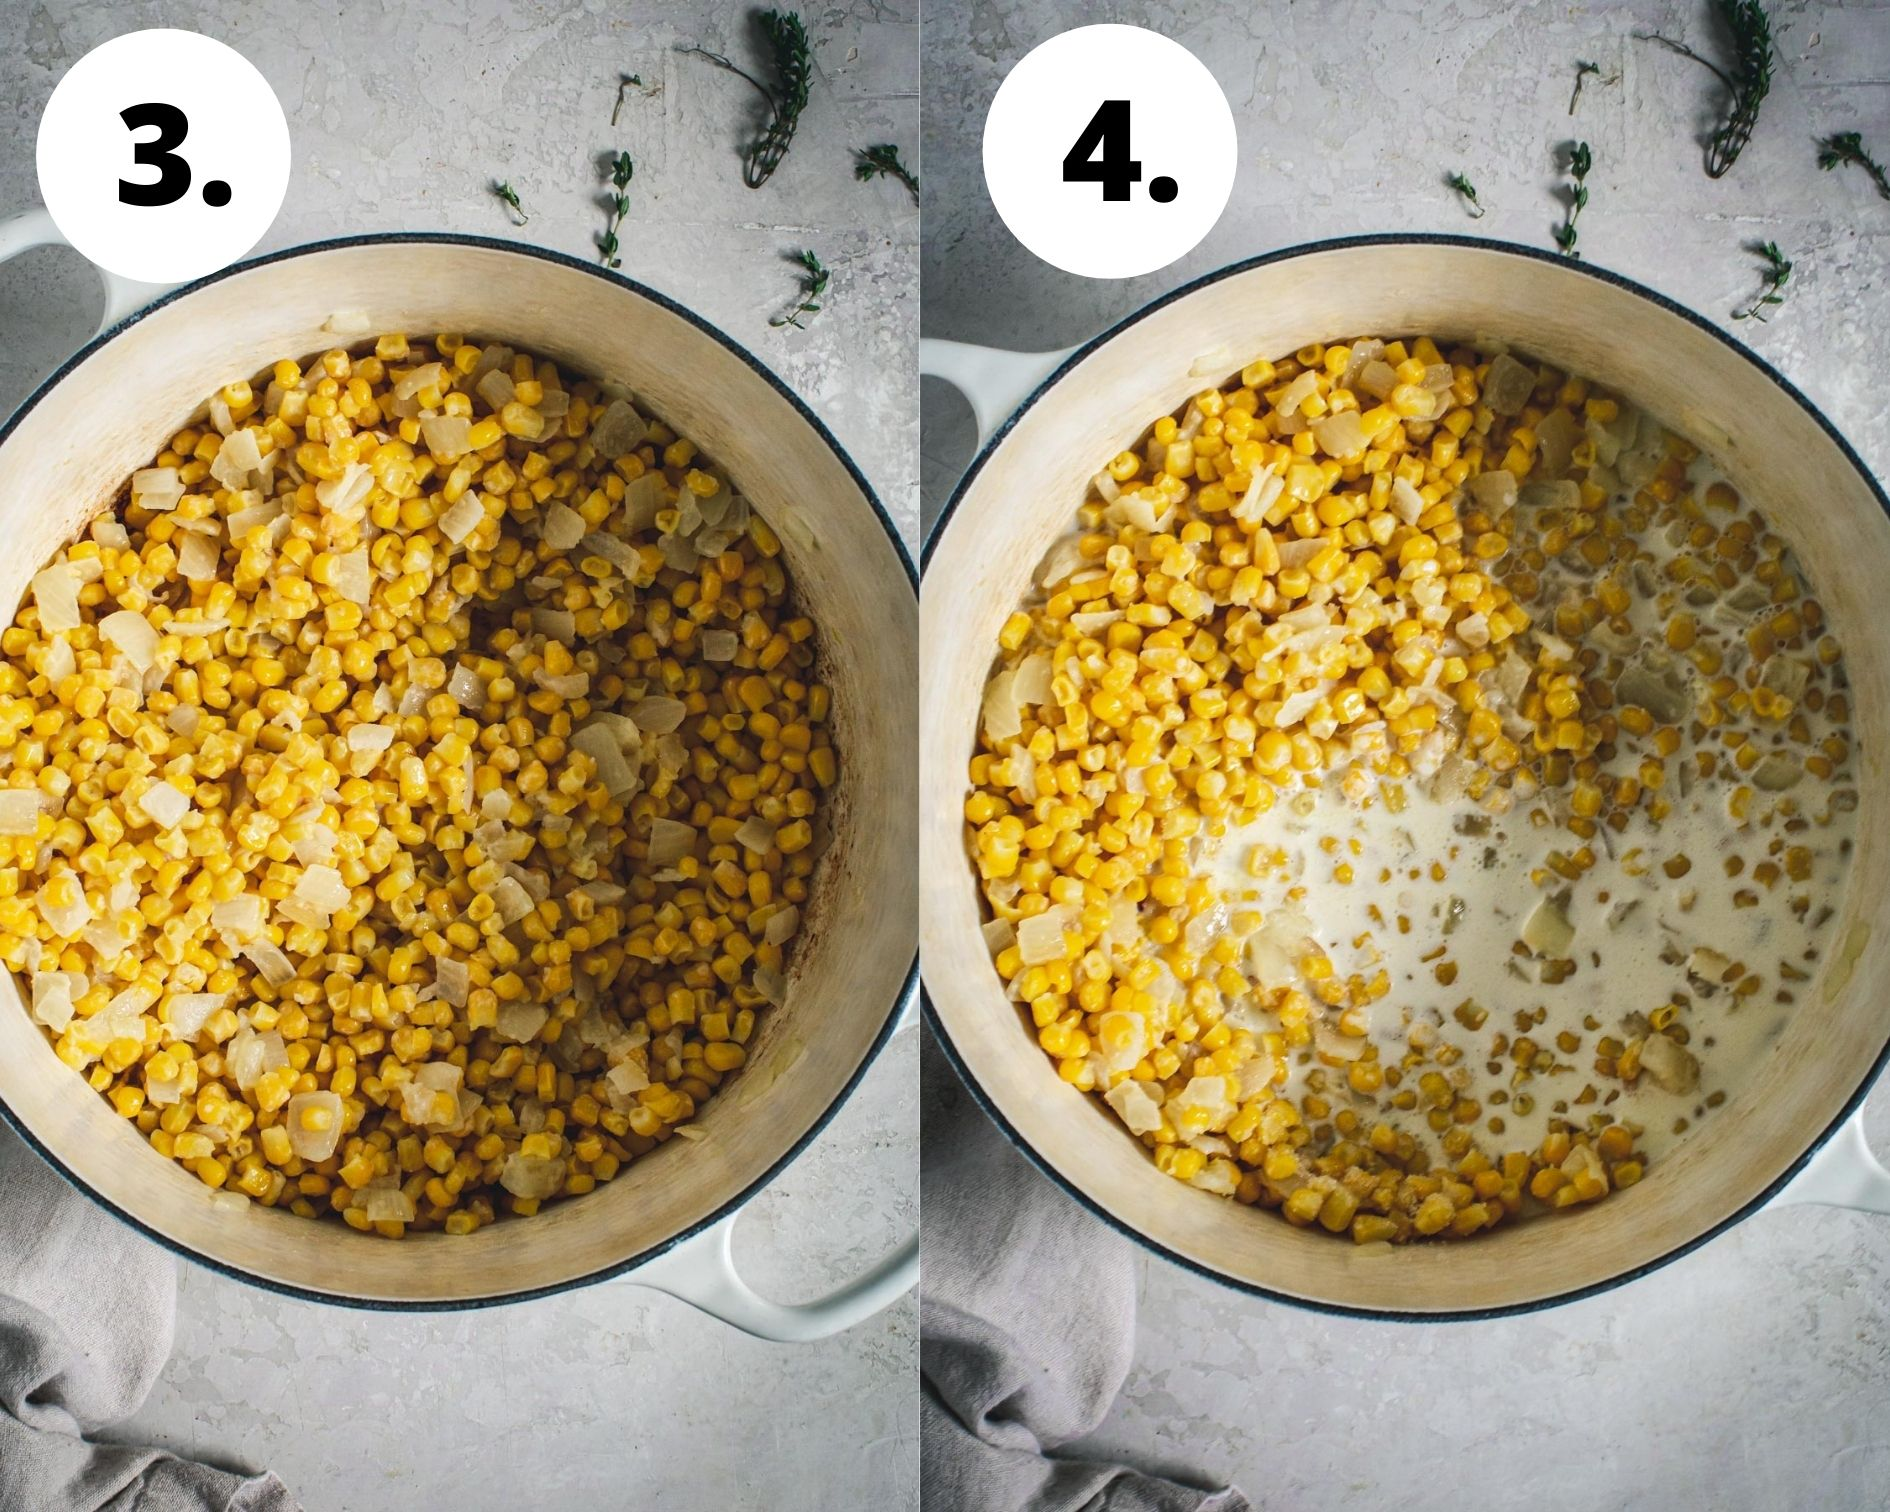 Best creamed corn process steps 3 and 4.